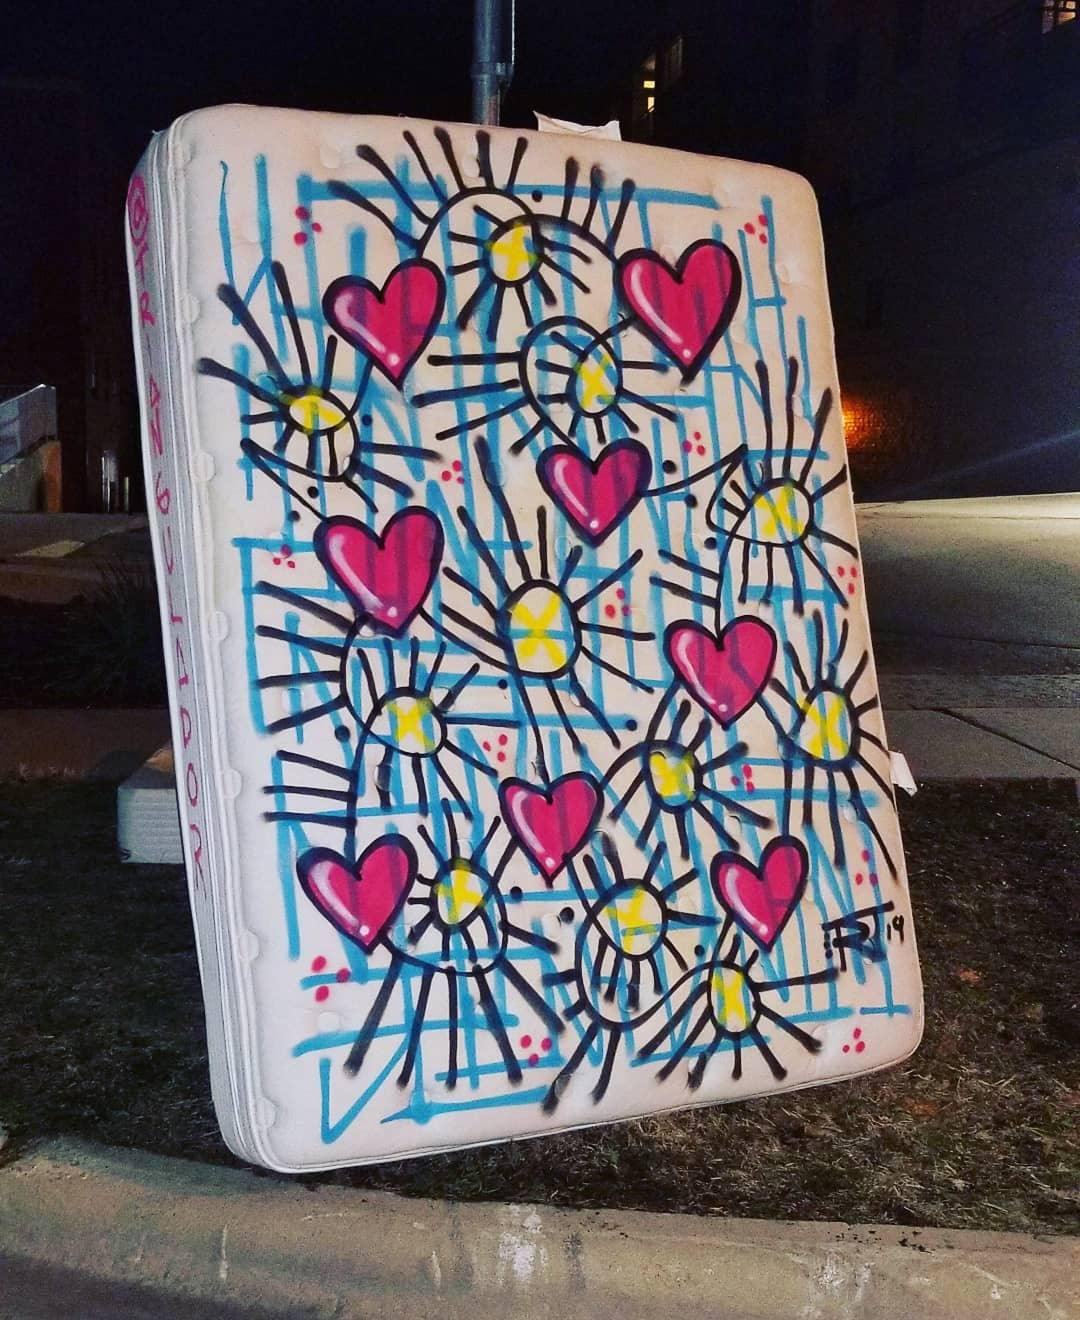 Image contains street art outdoors at night on mattress